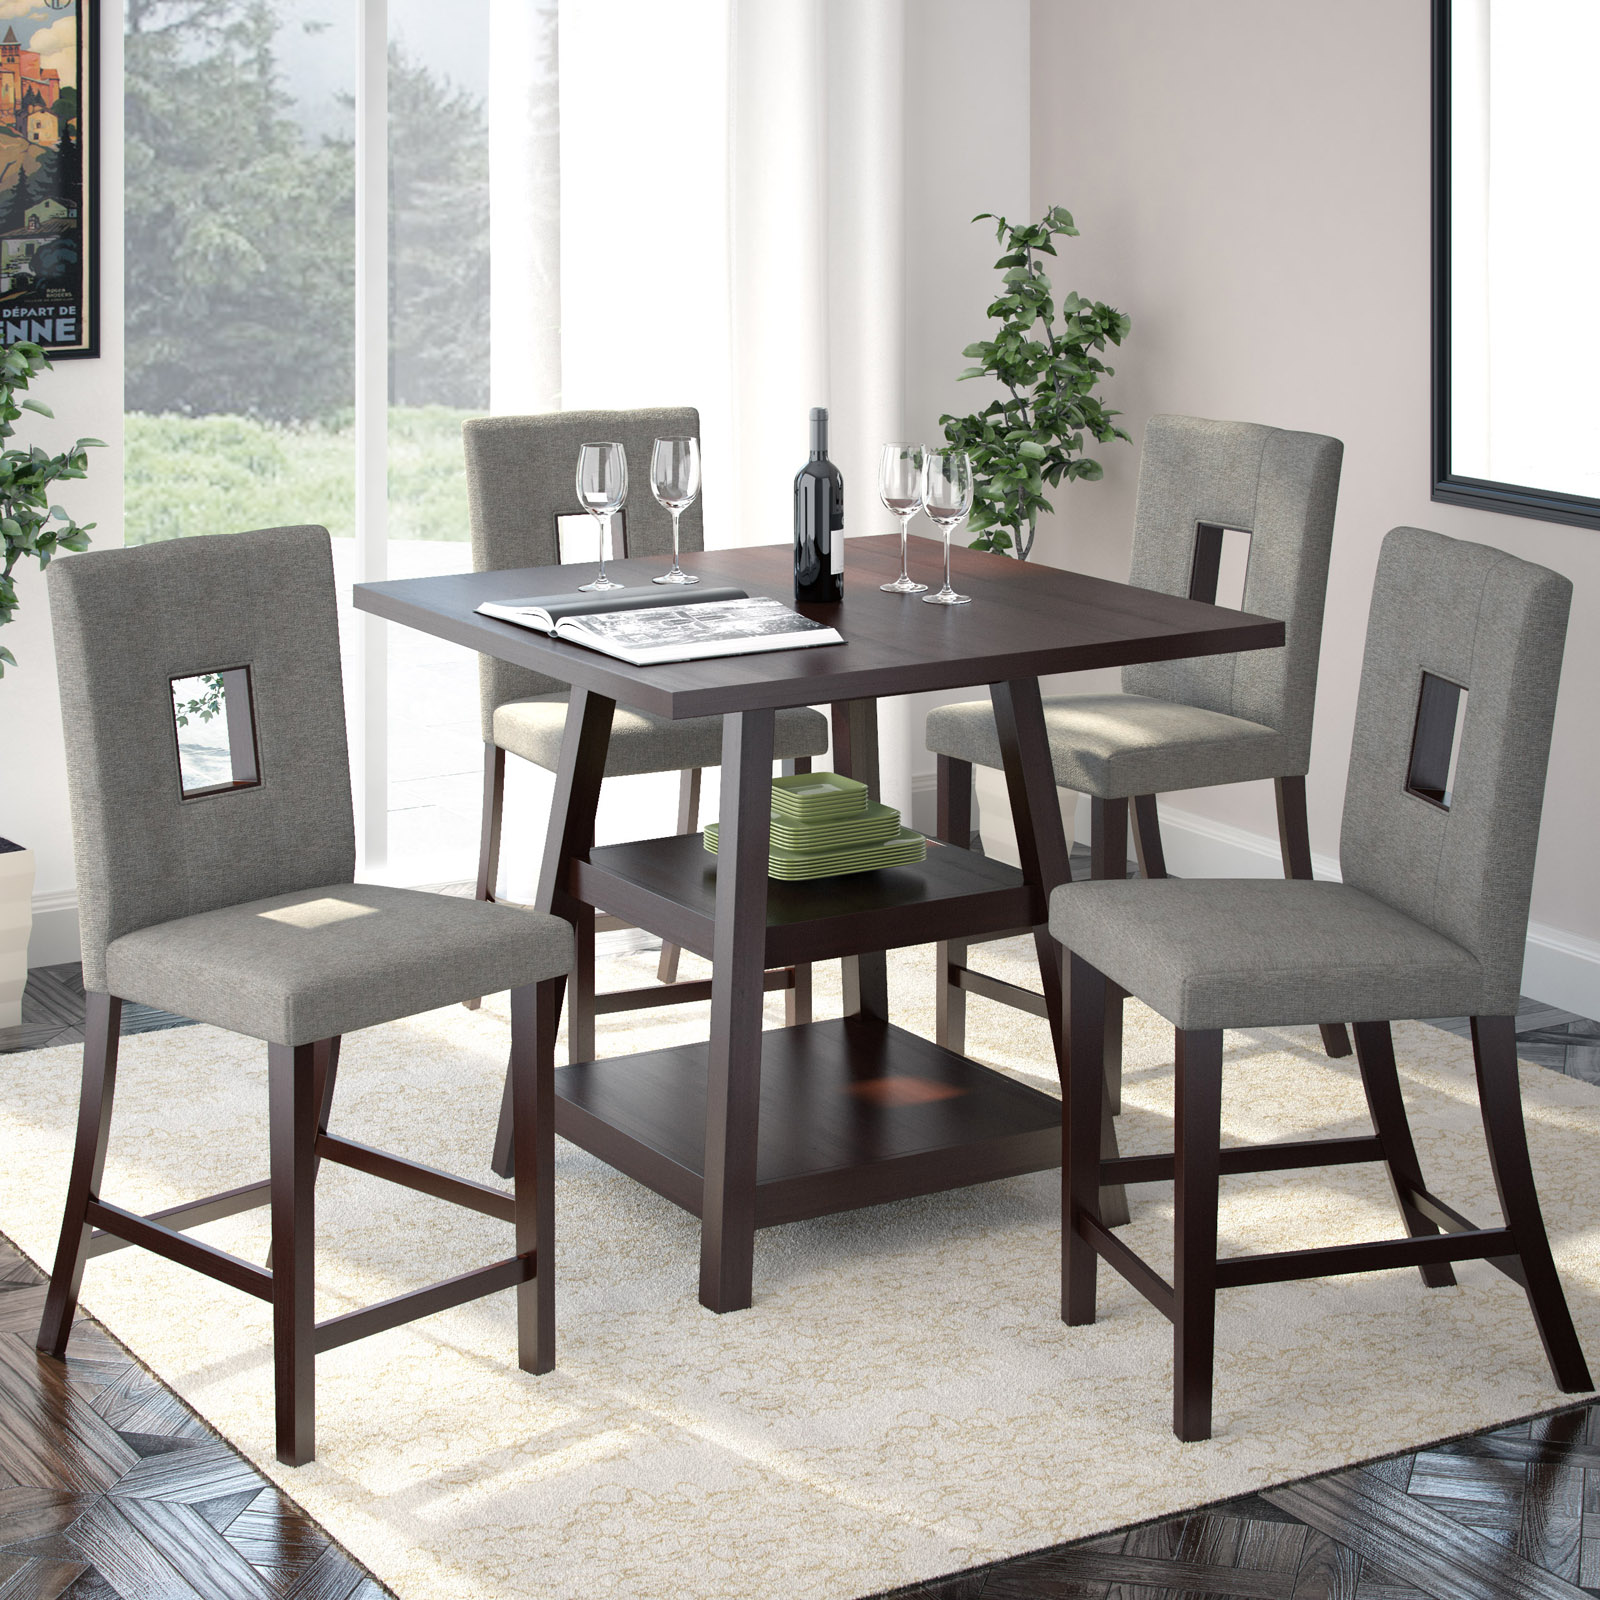 Corliving bistro 5 piece counter height dining set rich for Counter height dining set